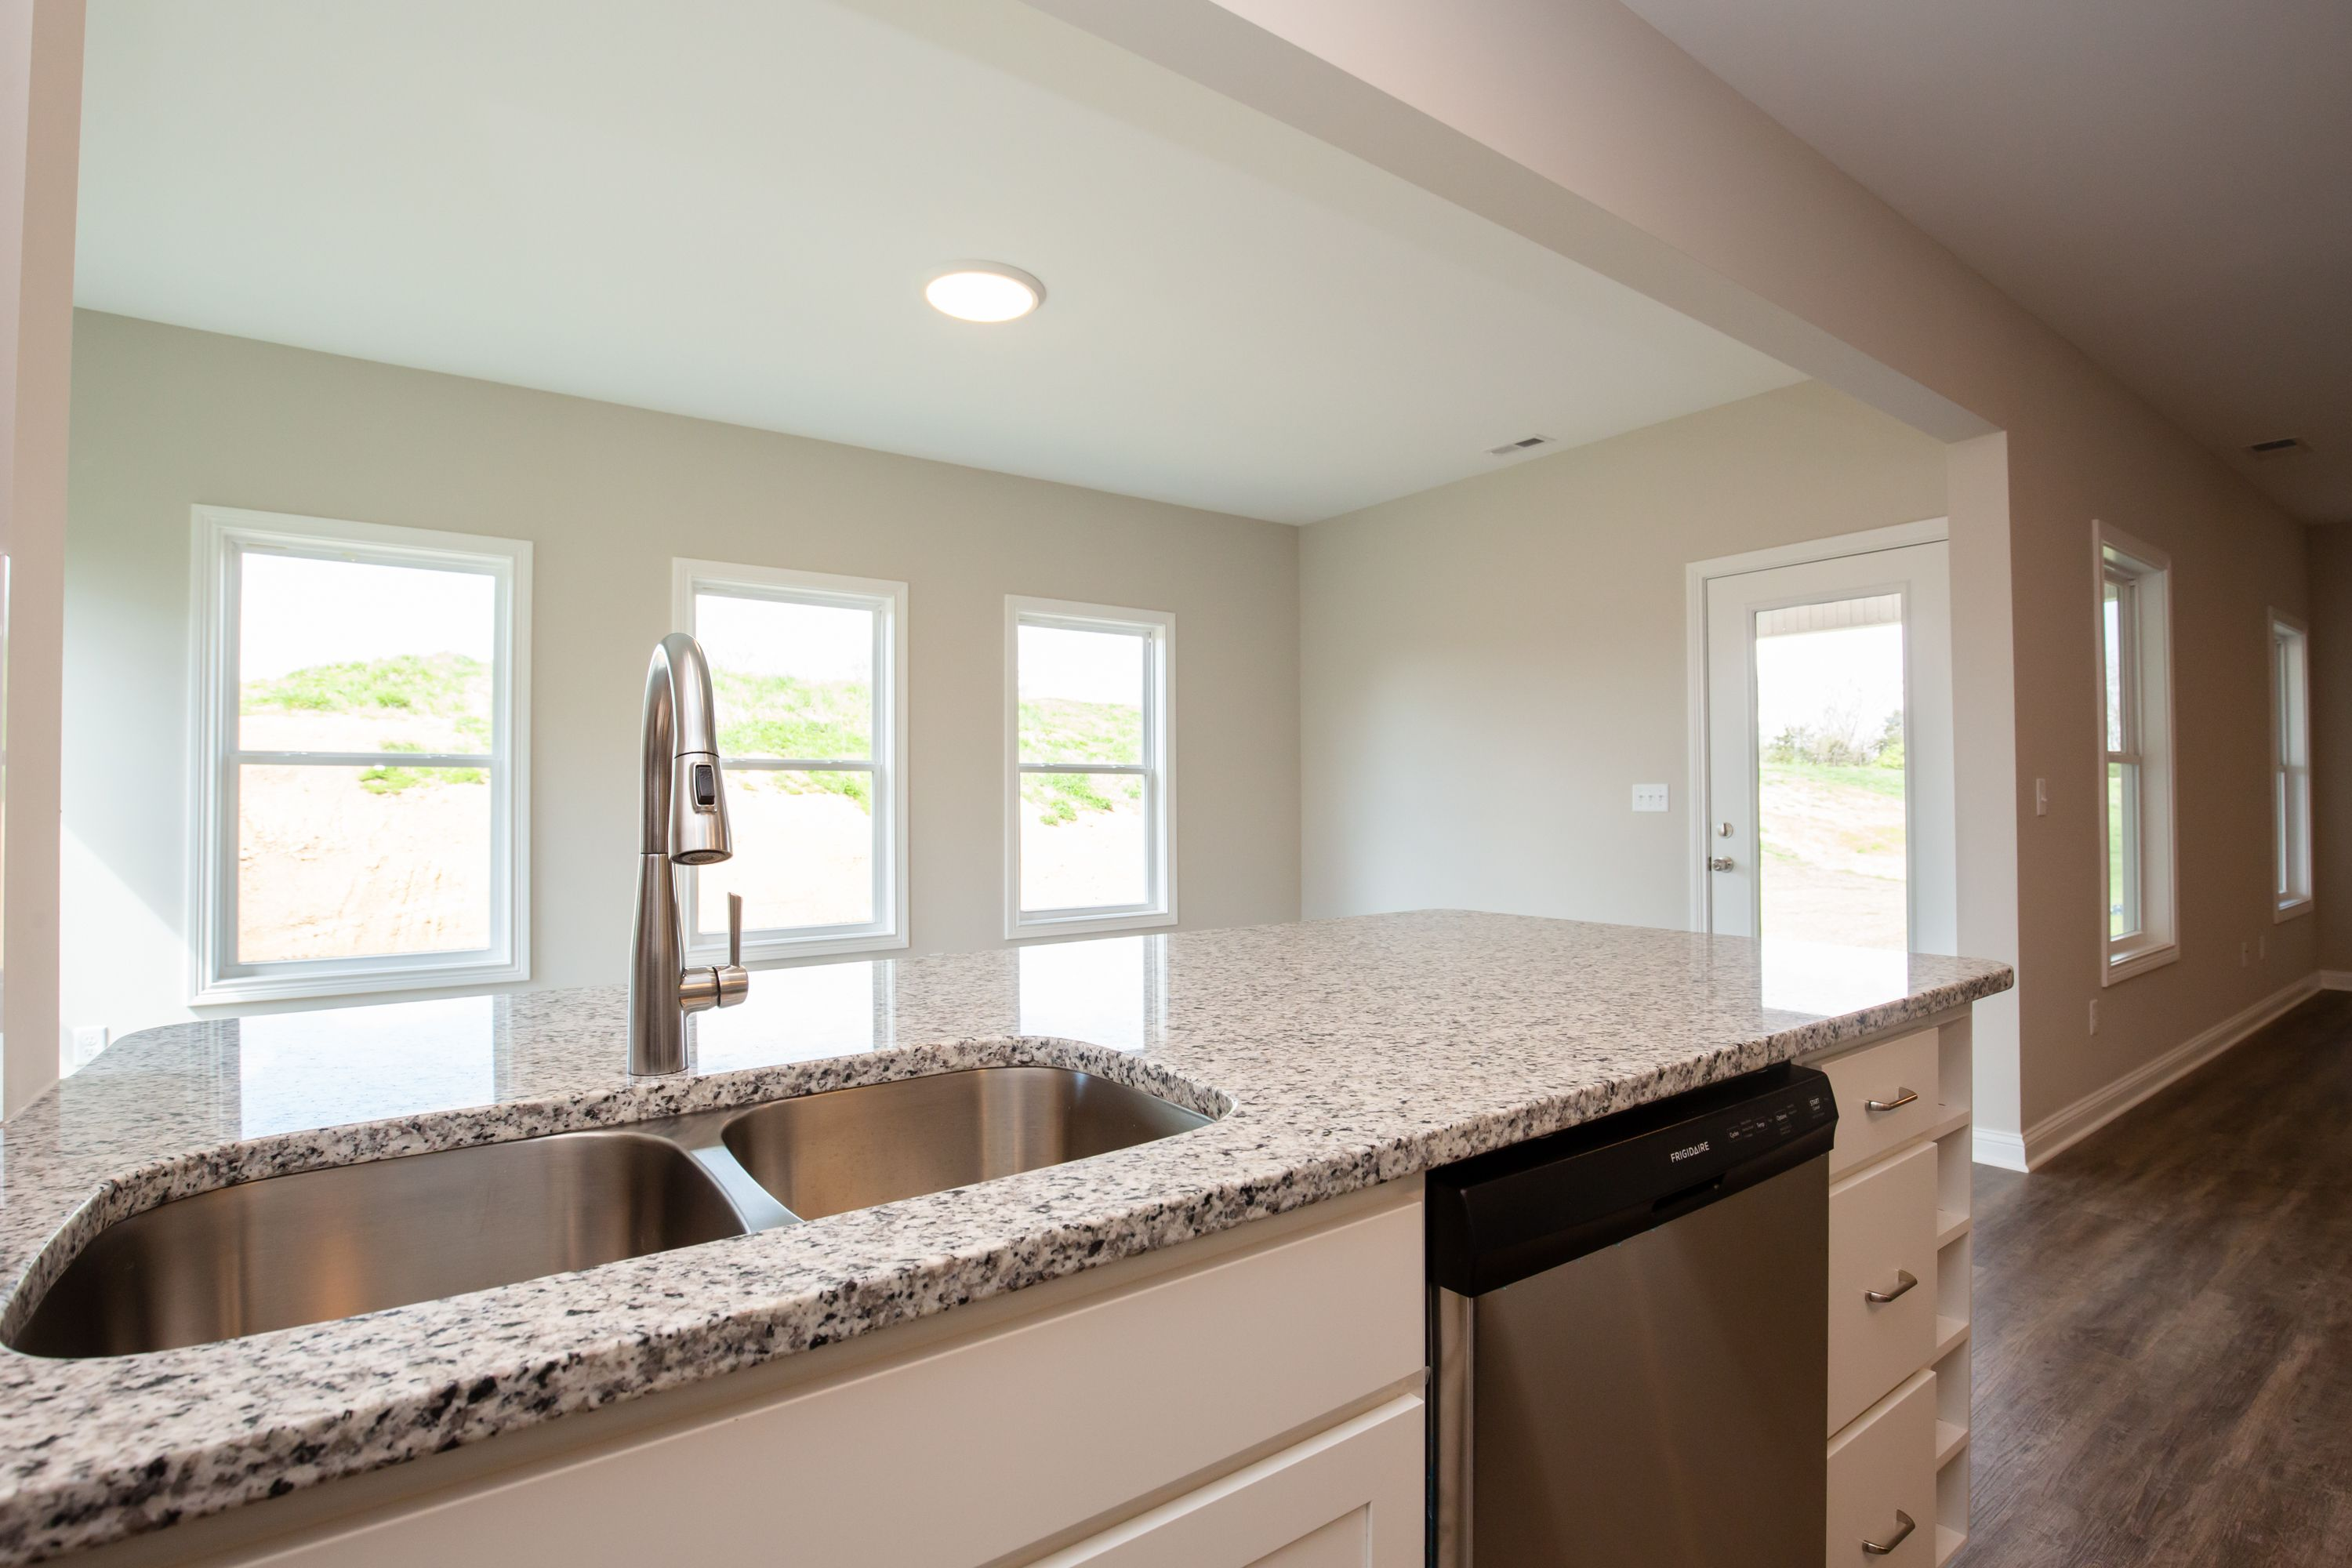 Kitchen featured in The Nancy - 3rd Car By James Monroe Homes in Lexington, KY